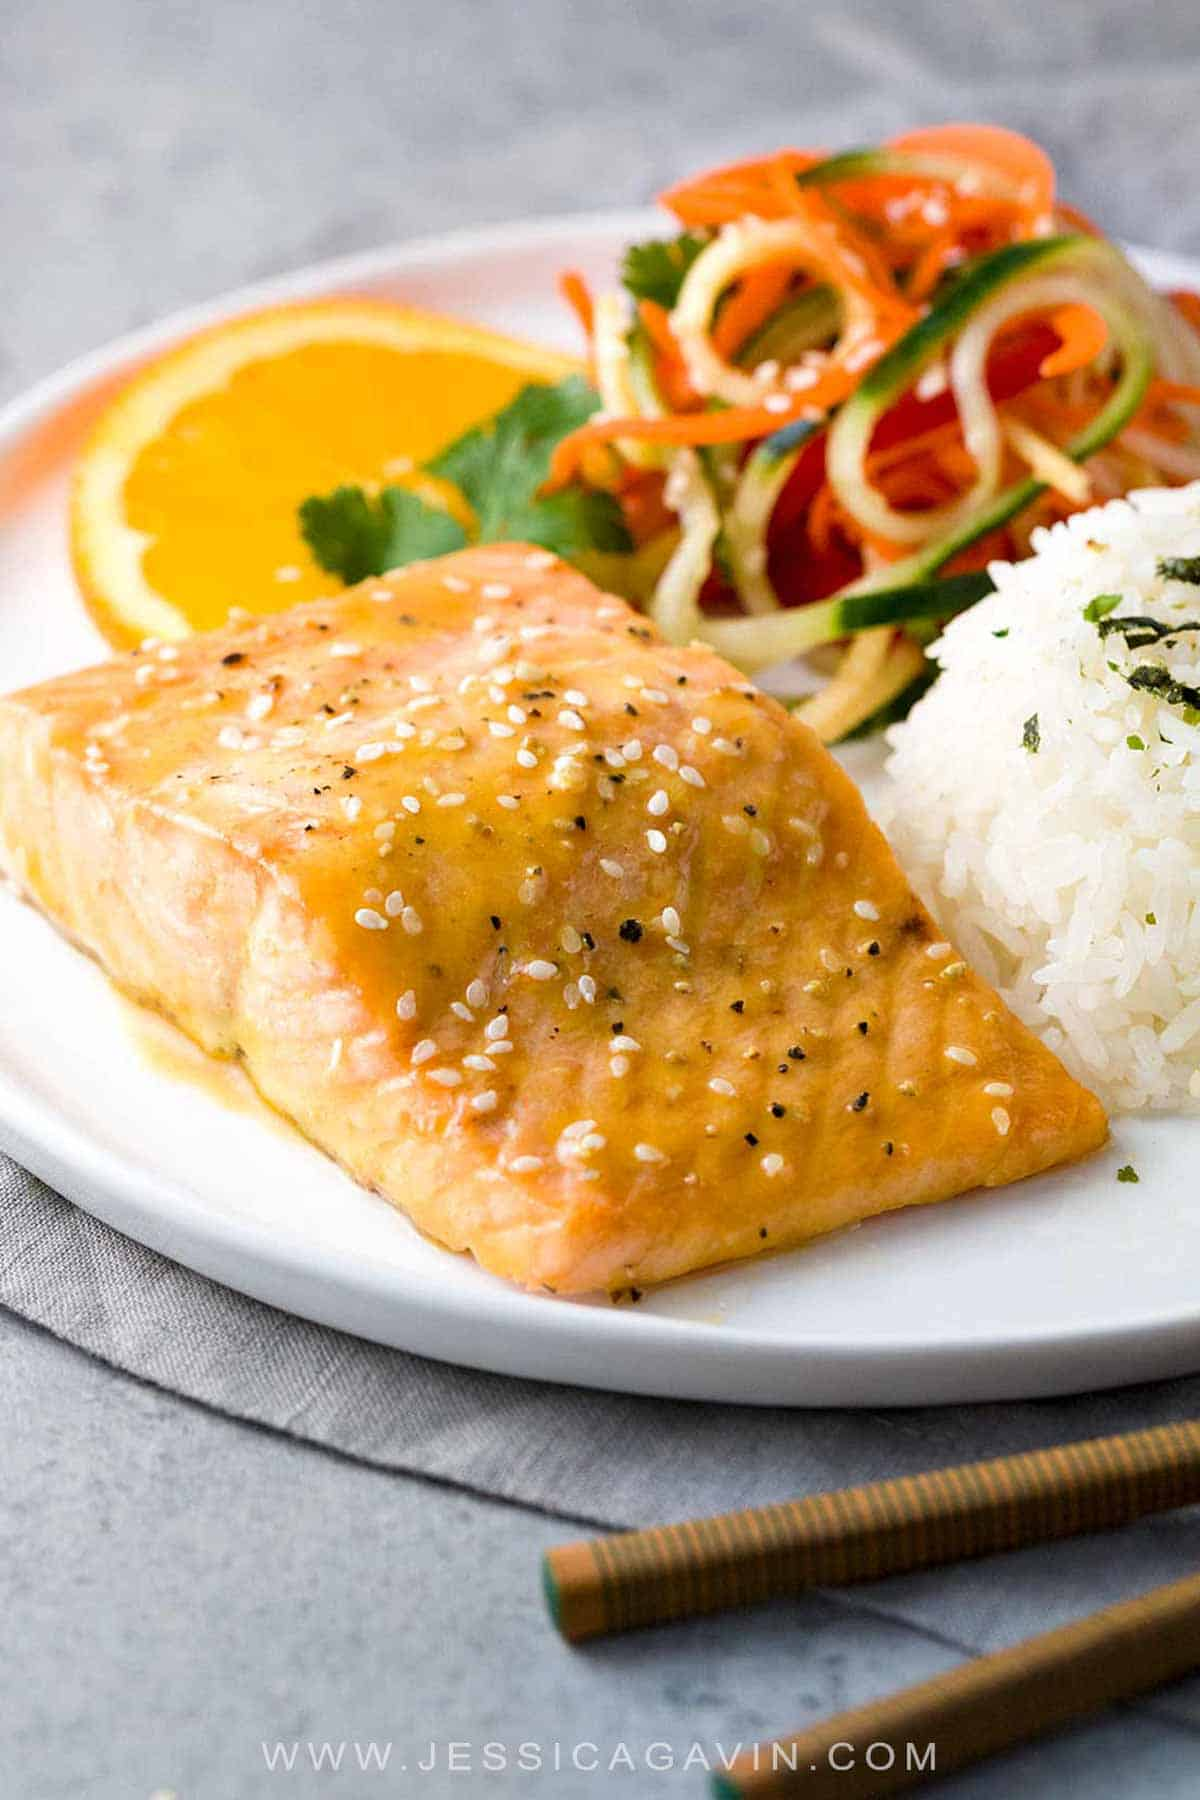 Pan Roasted Citrus-Soy Glazed Salmon - A quick and flavorful Asian-inspired recipe combining healthy protein and omega-3 fatty acids. Served with a crunchy and refreshing cucumber and vegetable salad.  #salmonrecipes #roastedsalmon #fishrecipes #healthyrecipes